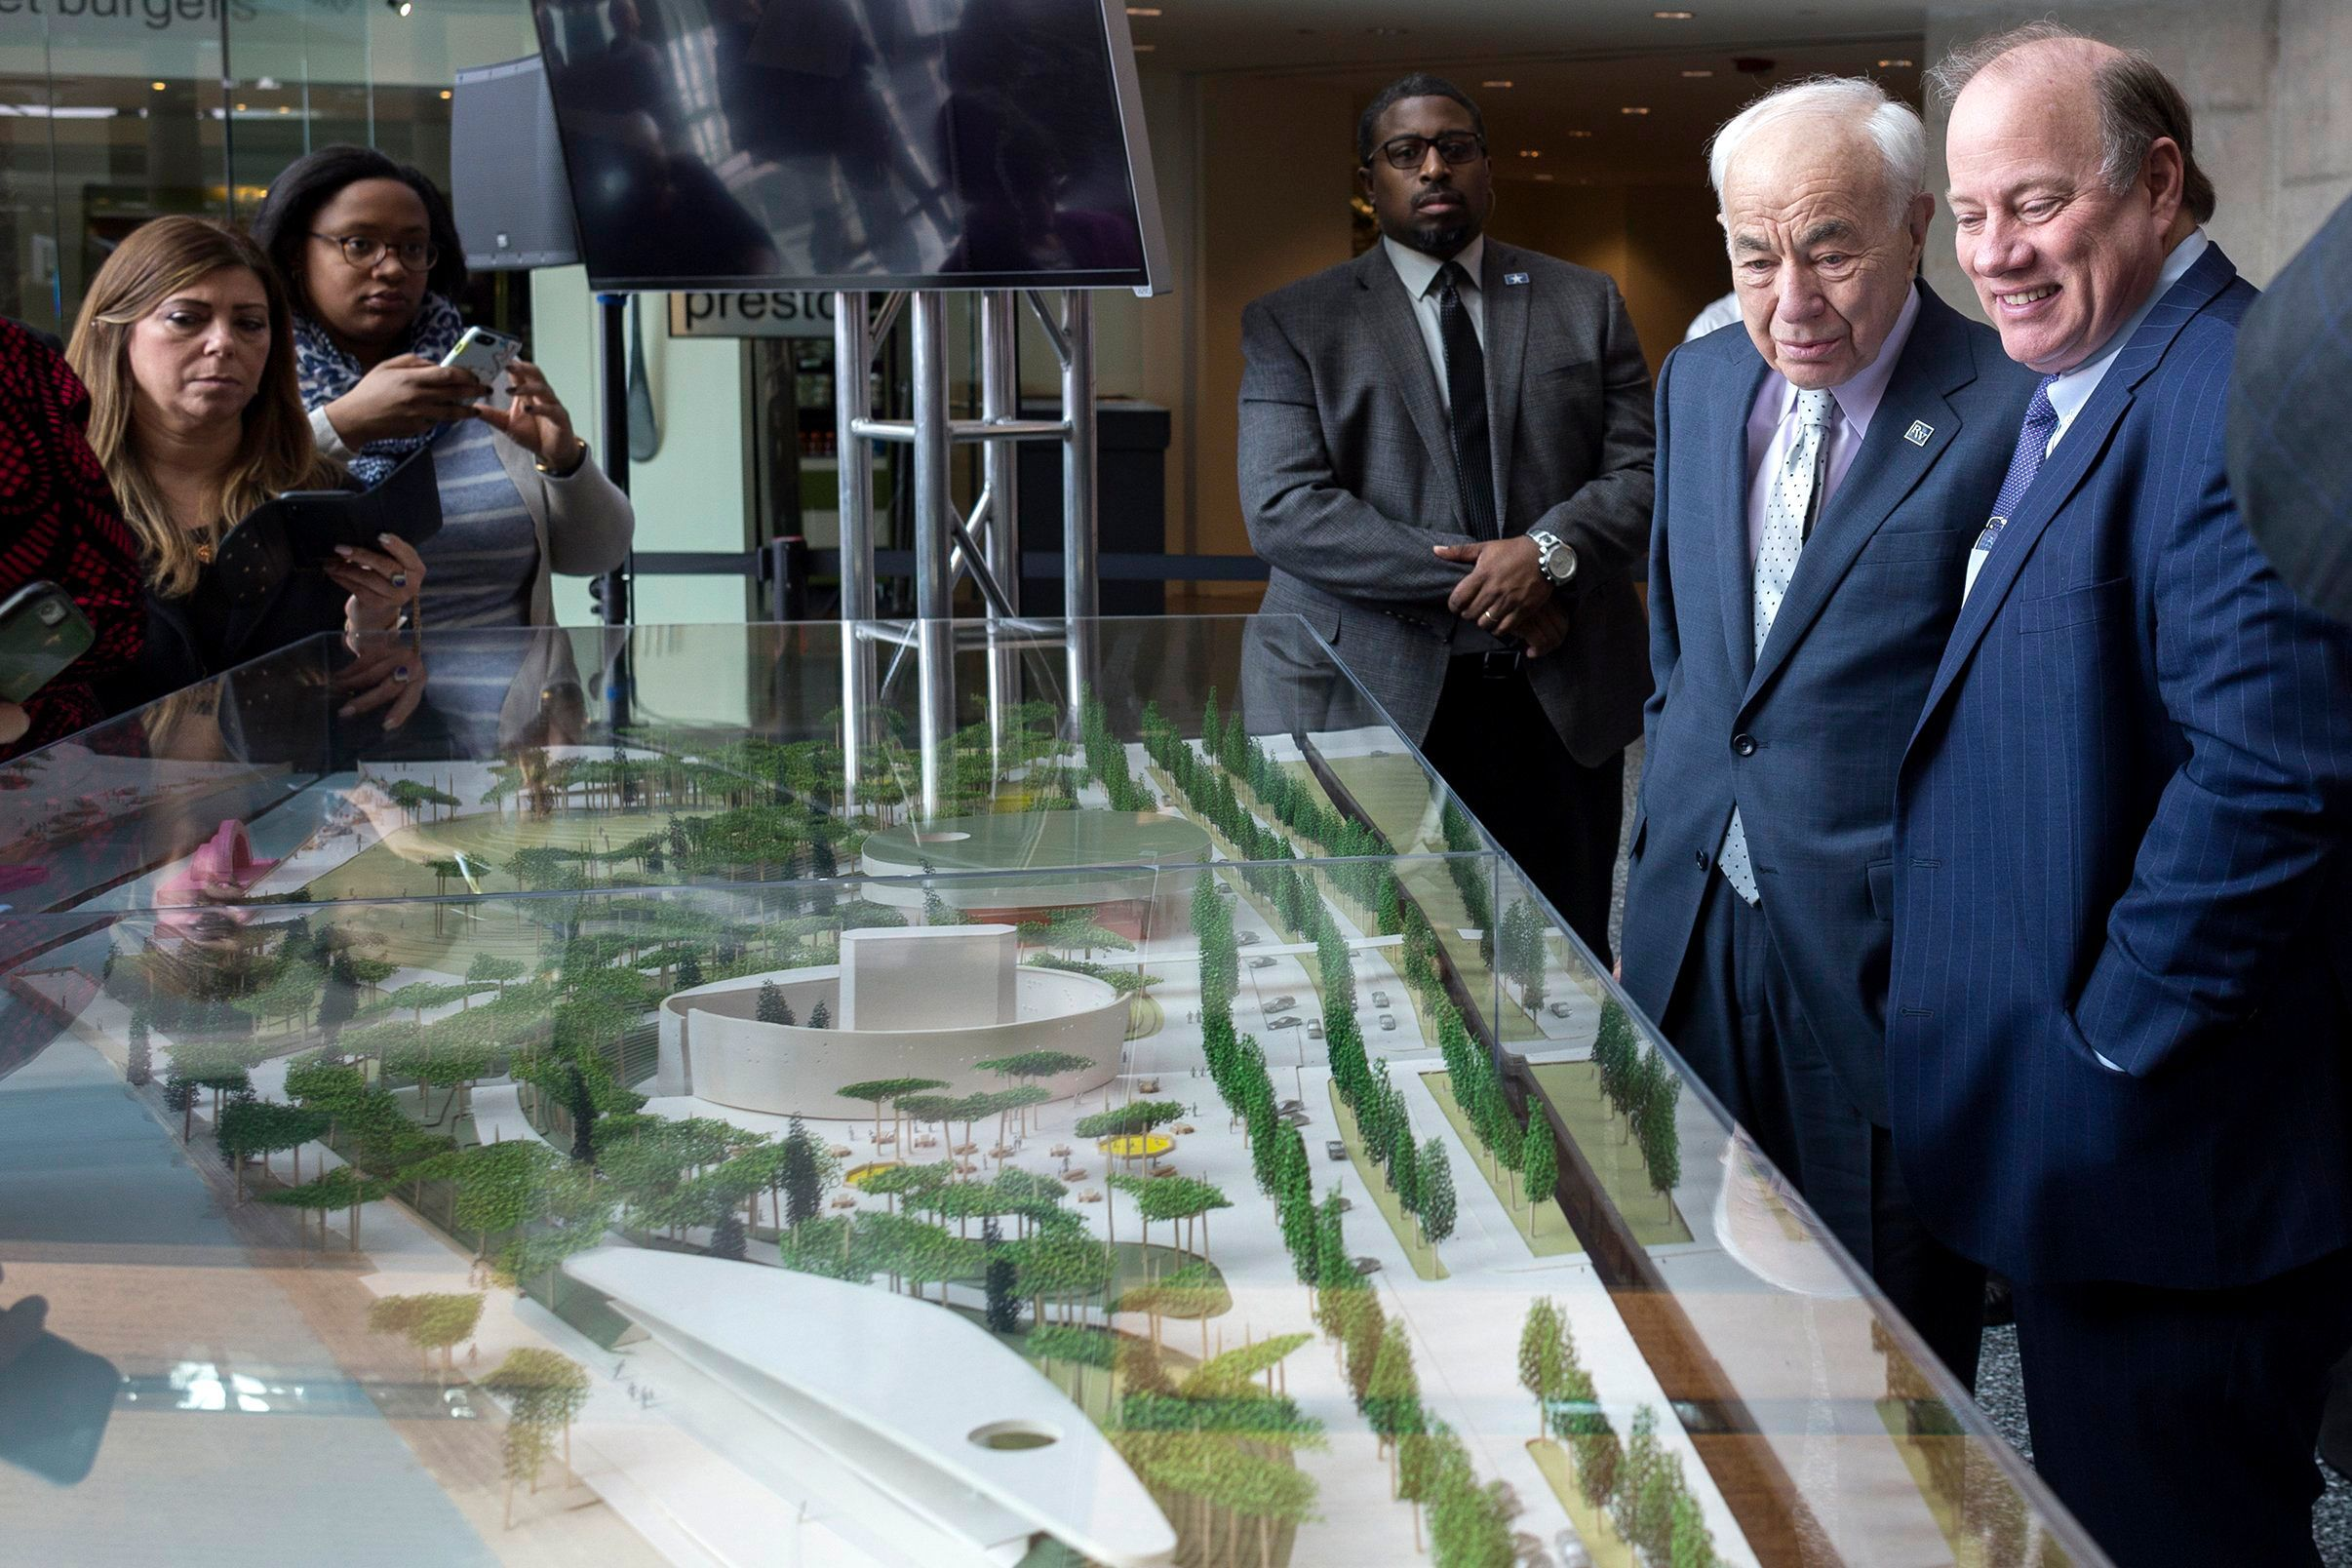 Ralph C. Wilson Jr. Foundation Trustee, Eugene Driker, left, stands next to Detroit Mayor Mike Duggan, as people gather around the West Riverfront Park model by the winning firm Michael Van Valkenburgh Associates on Tuesday, April 10, 2018 at the General Motors Renaissance Center in Detroit. Michael Van Valkeburgh Associates and David Adjaye, Principal of Adjaye Associates will reimagine the 22 acre West Riverfront Park in Detroit.